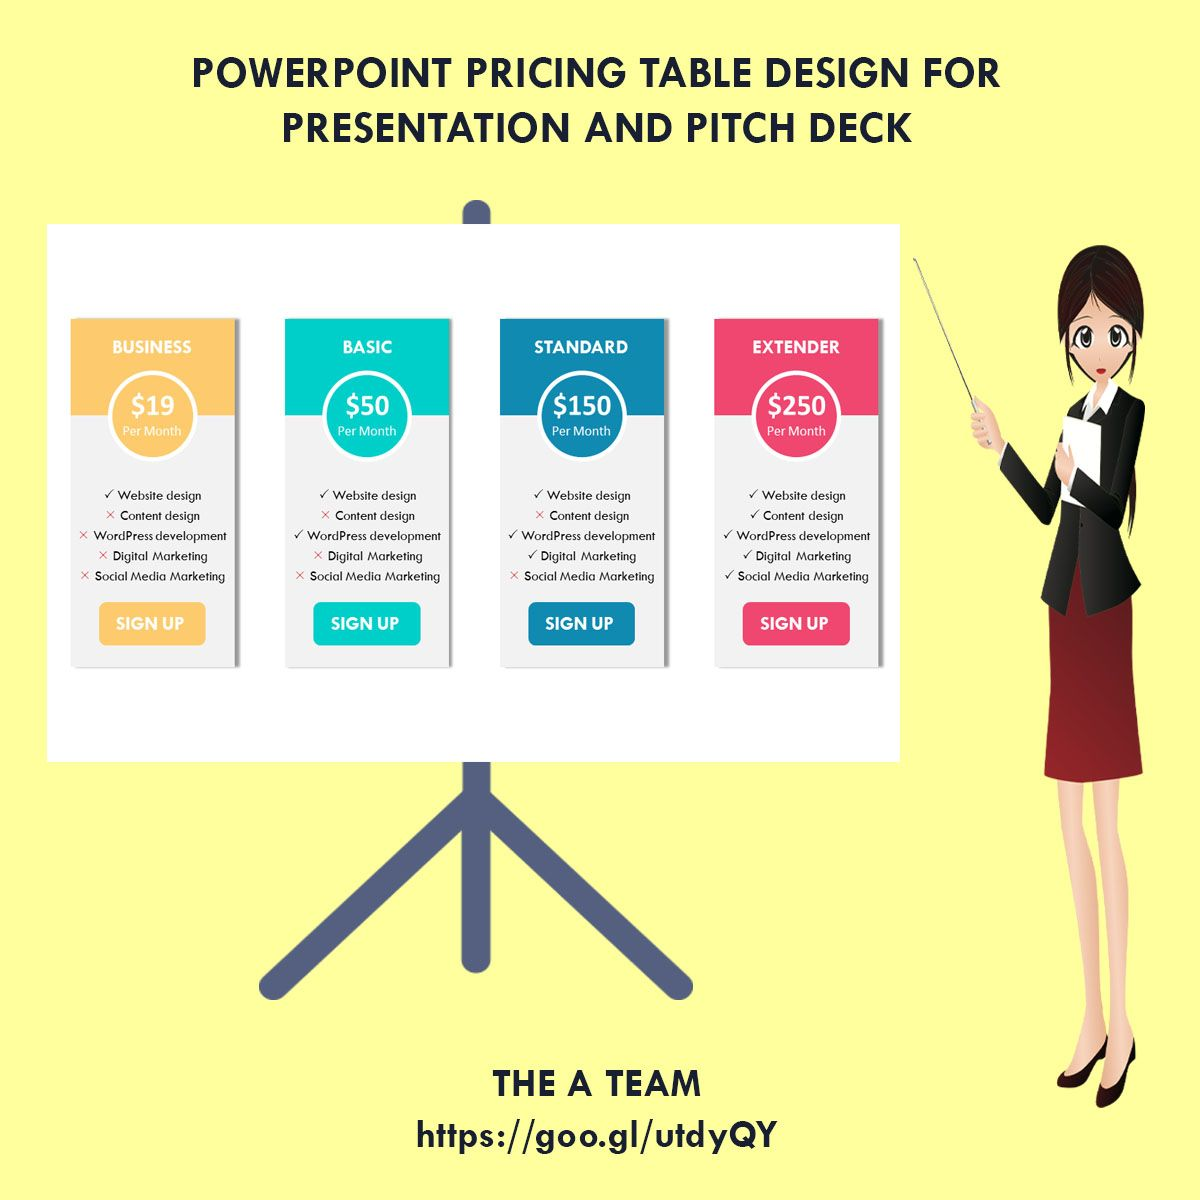 Design Investor Pitch Deck For Your Business Or Startup With